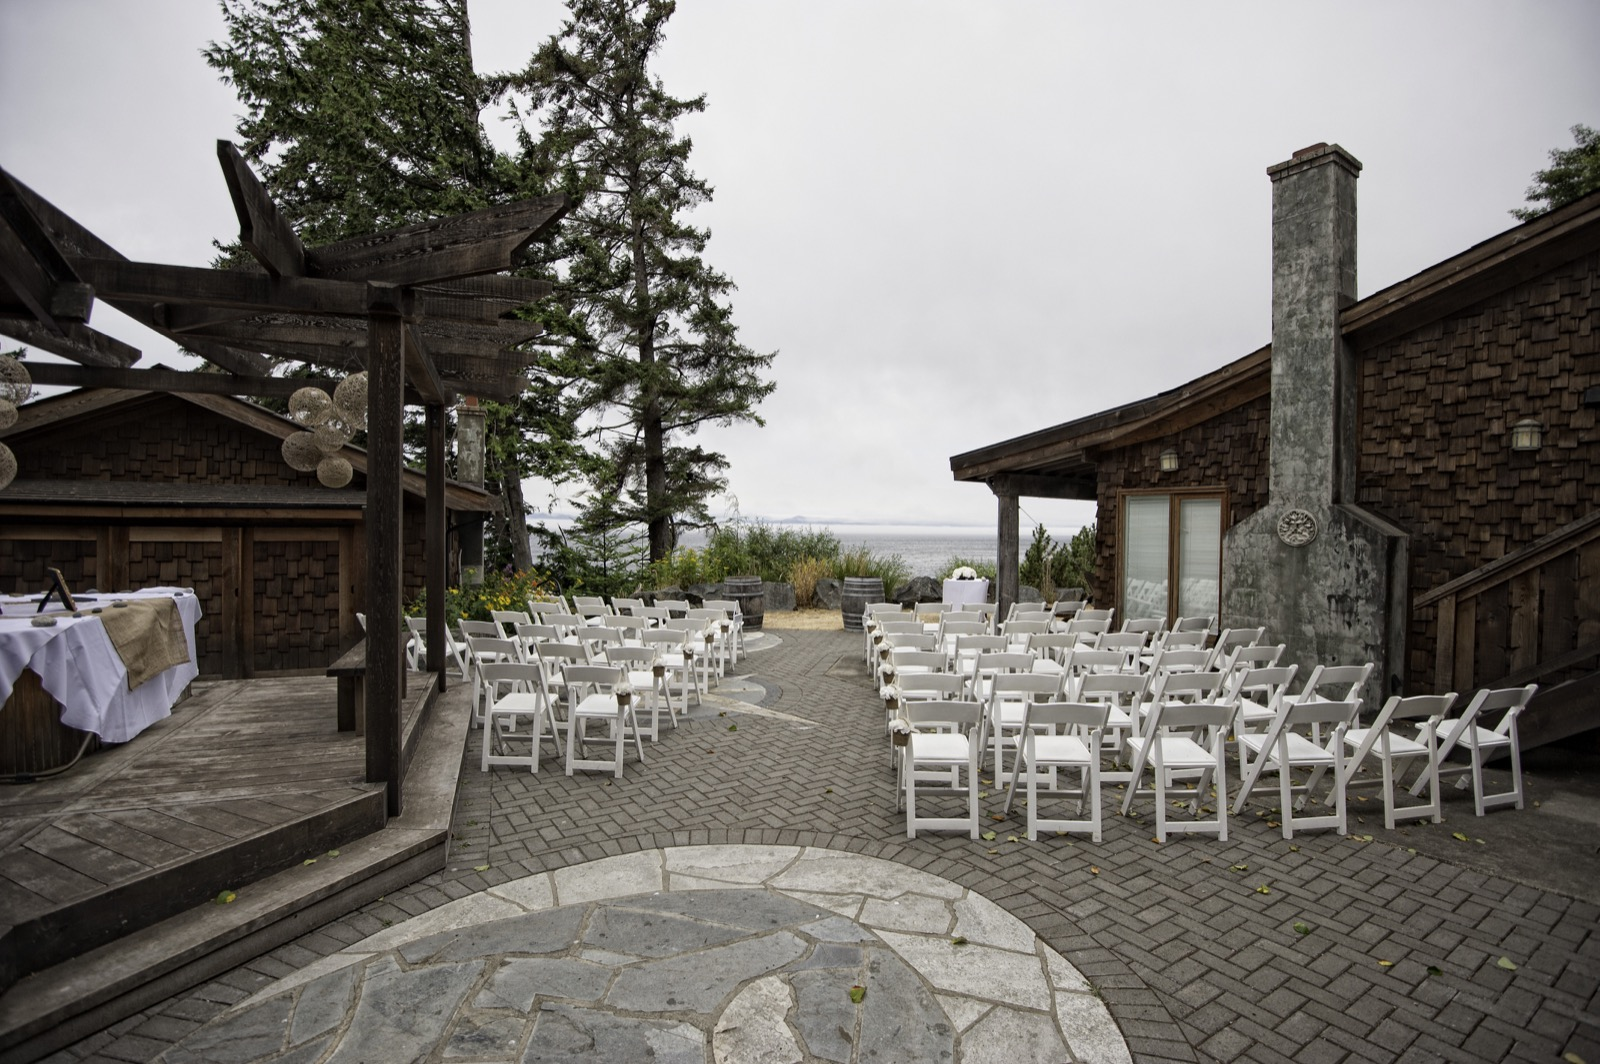 sooke-wedding-photographers-craidelonna-oceanedge-lodge-wedding-19.jpg